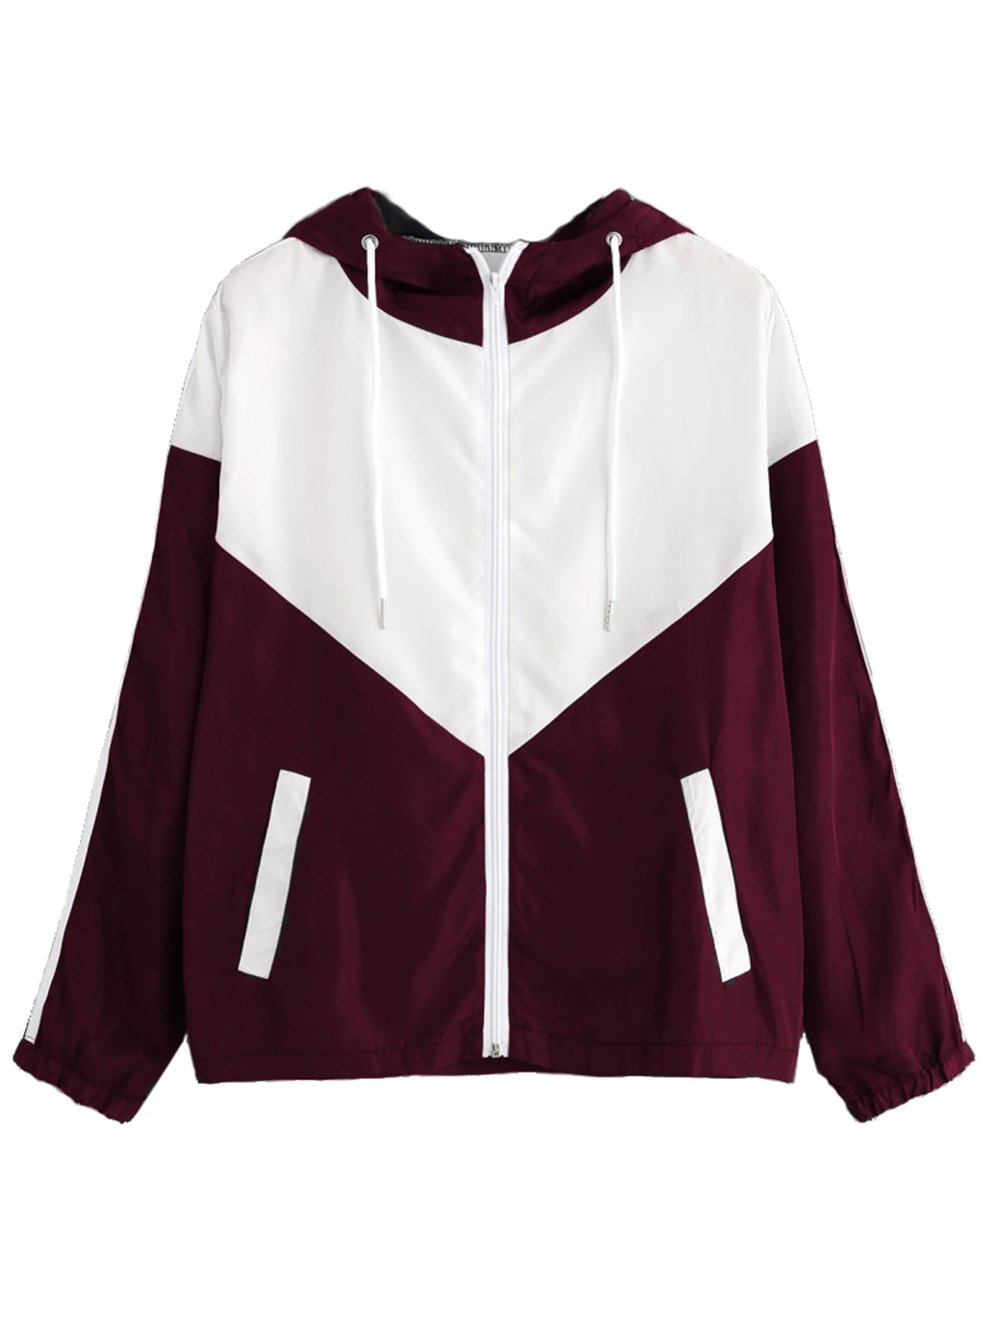 Milumia Women's Color Block Drawstring Hooded Zip Up Sports Jacket Windproof Windbreaker Large White and Burgundy